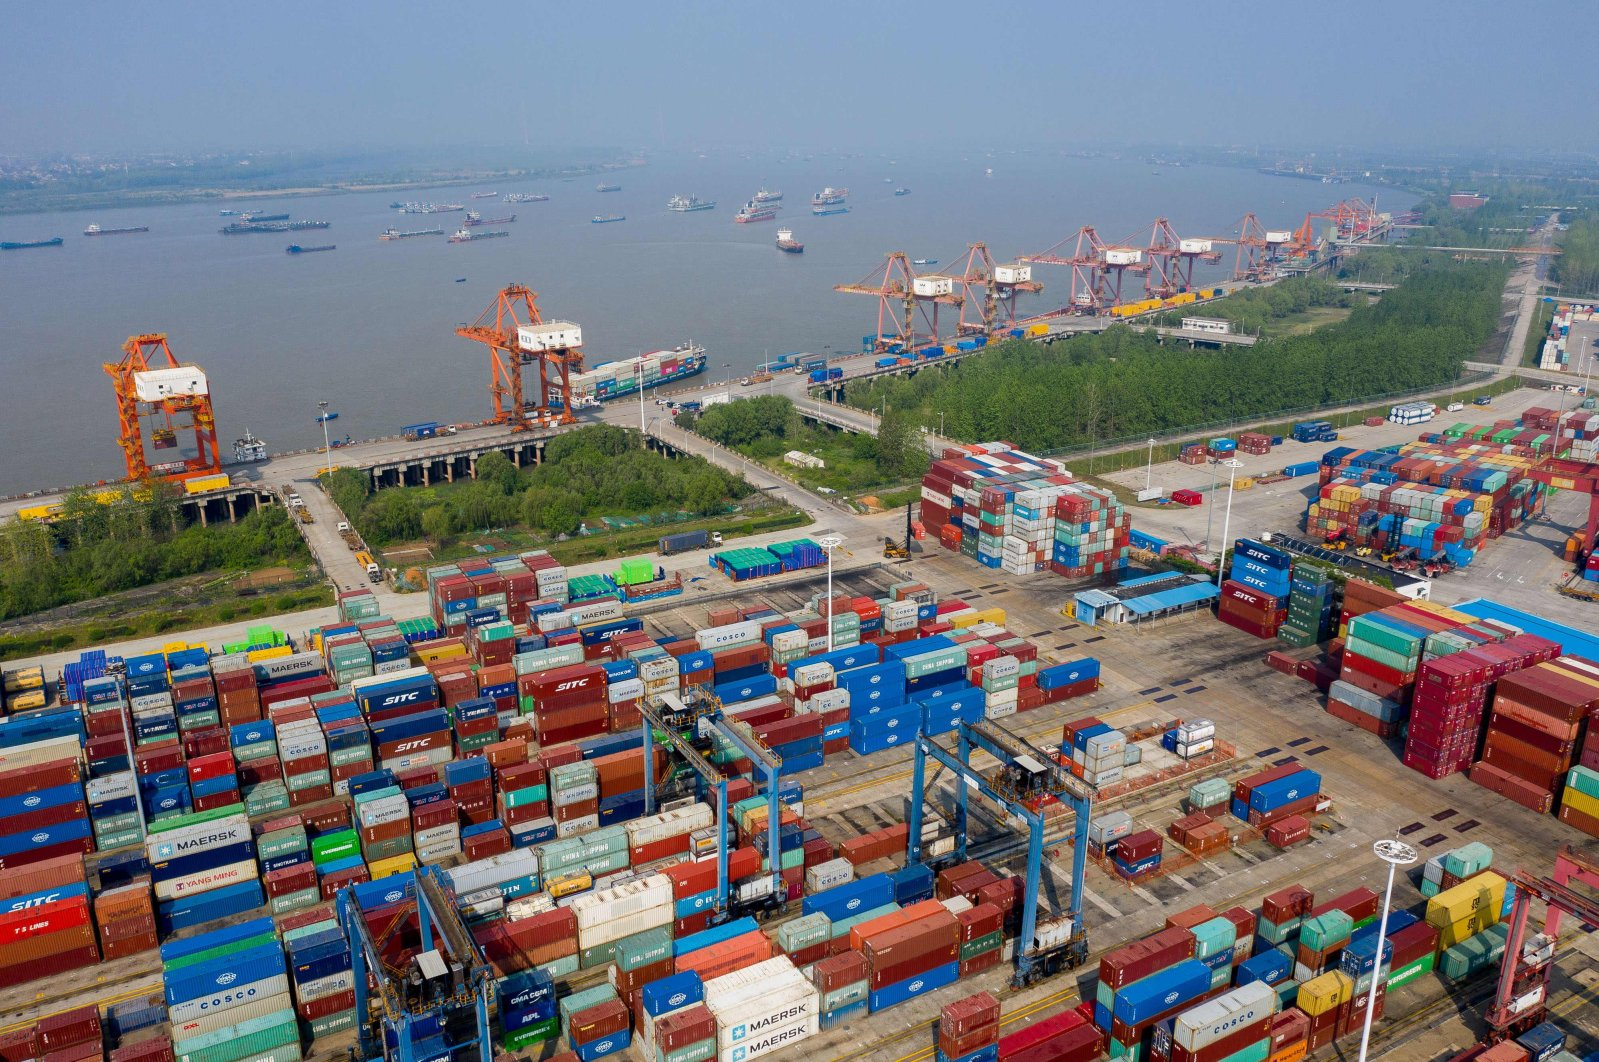 Containers are seen at the port in Wuhan, on the Yangtze river, in China's central Hubei province, April 12, 2020. (AFP Photo)